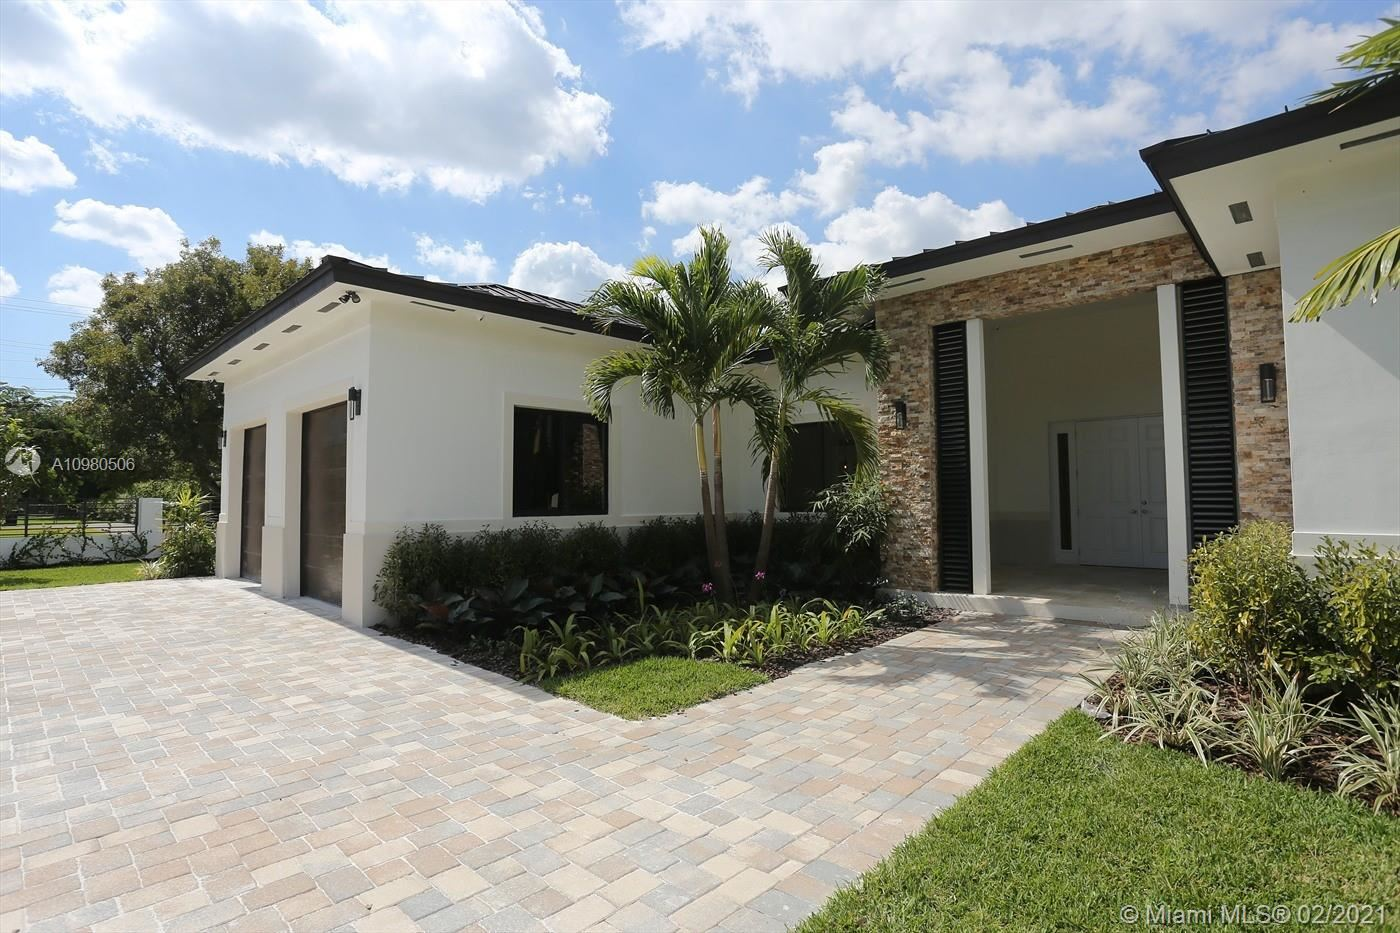 11180 SW 78th Ave, Pinecrest, FL 33156 - #: A10980506